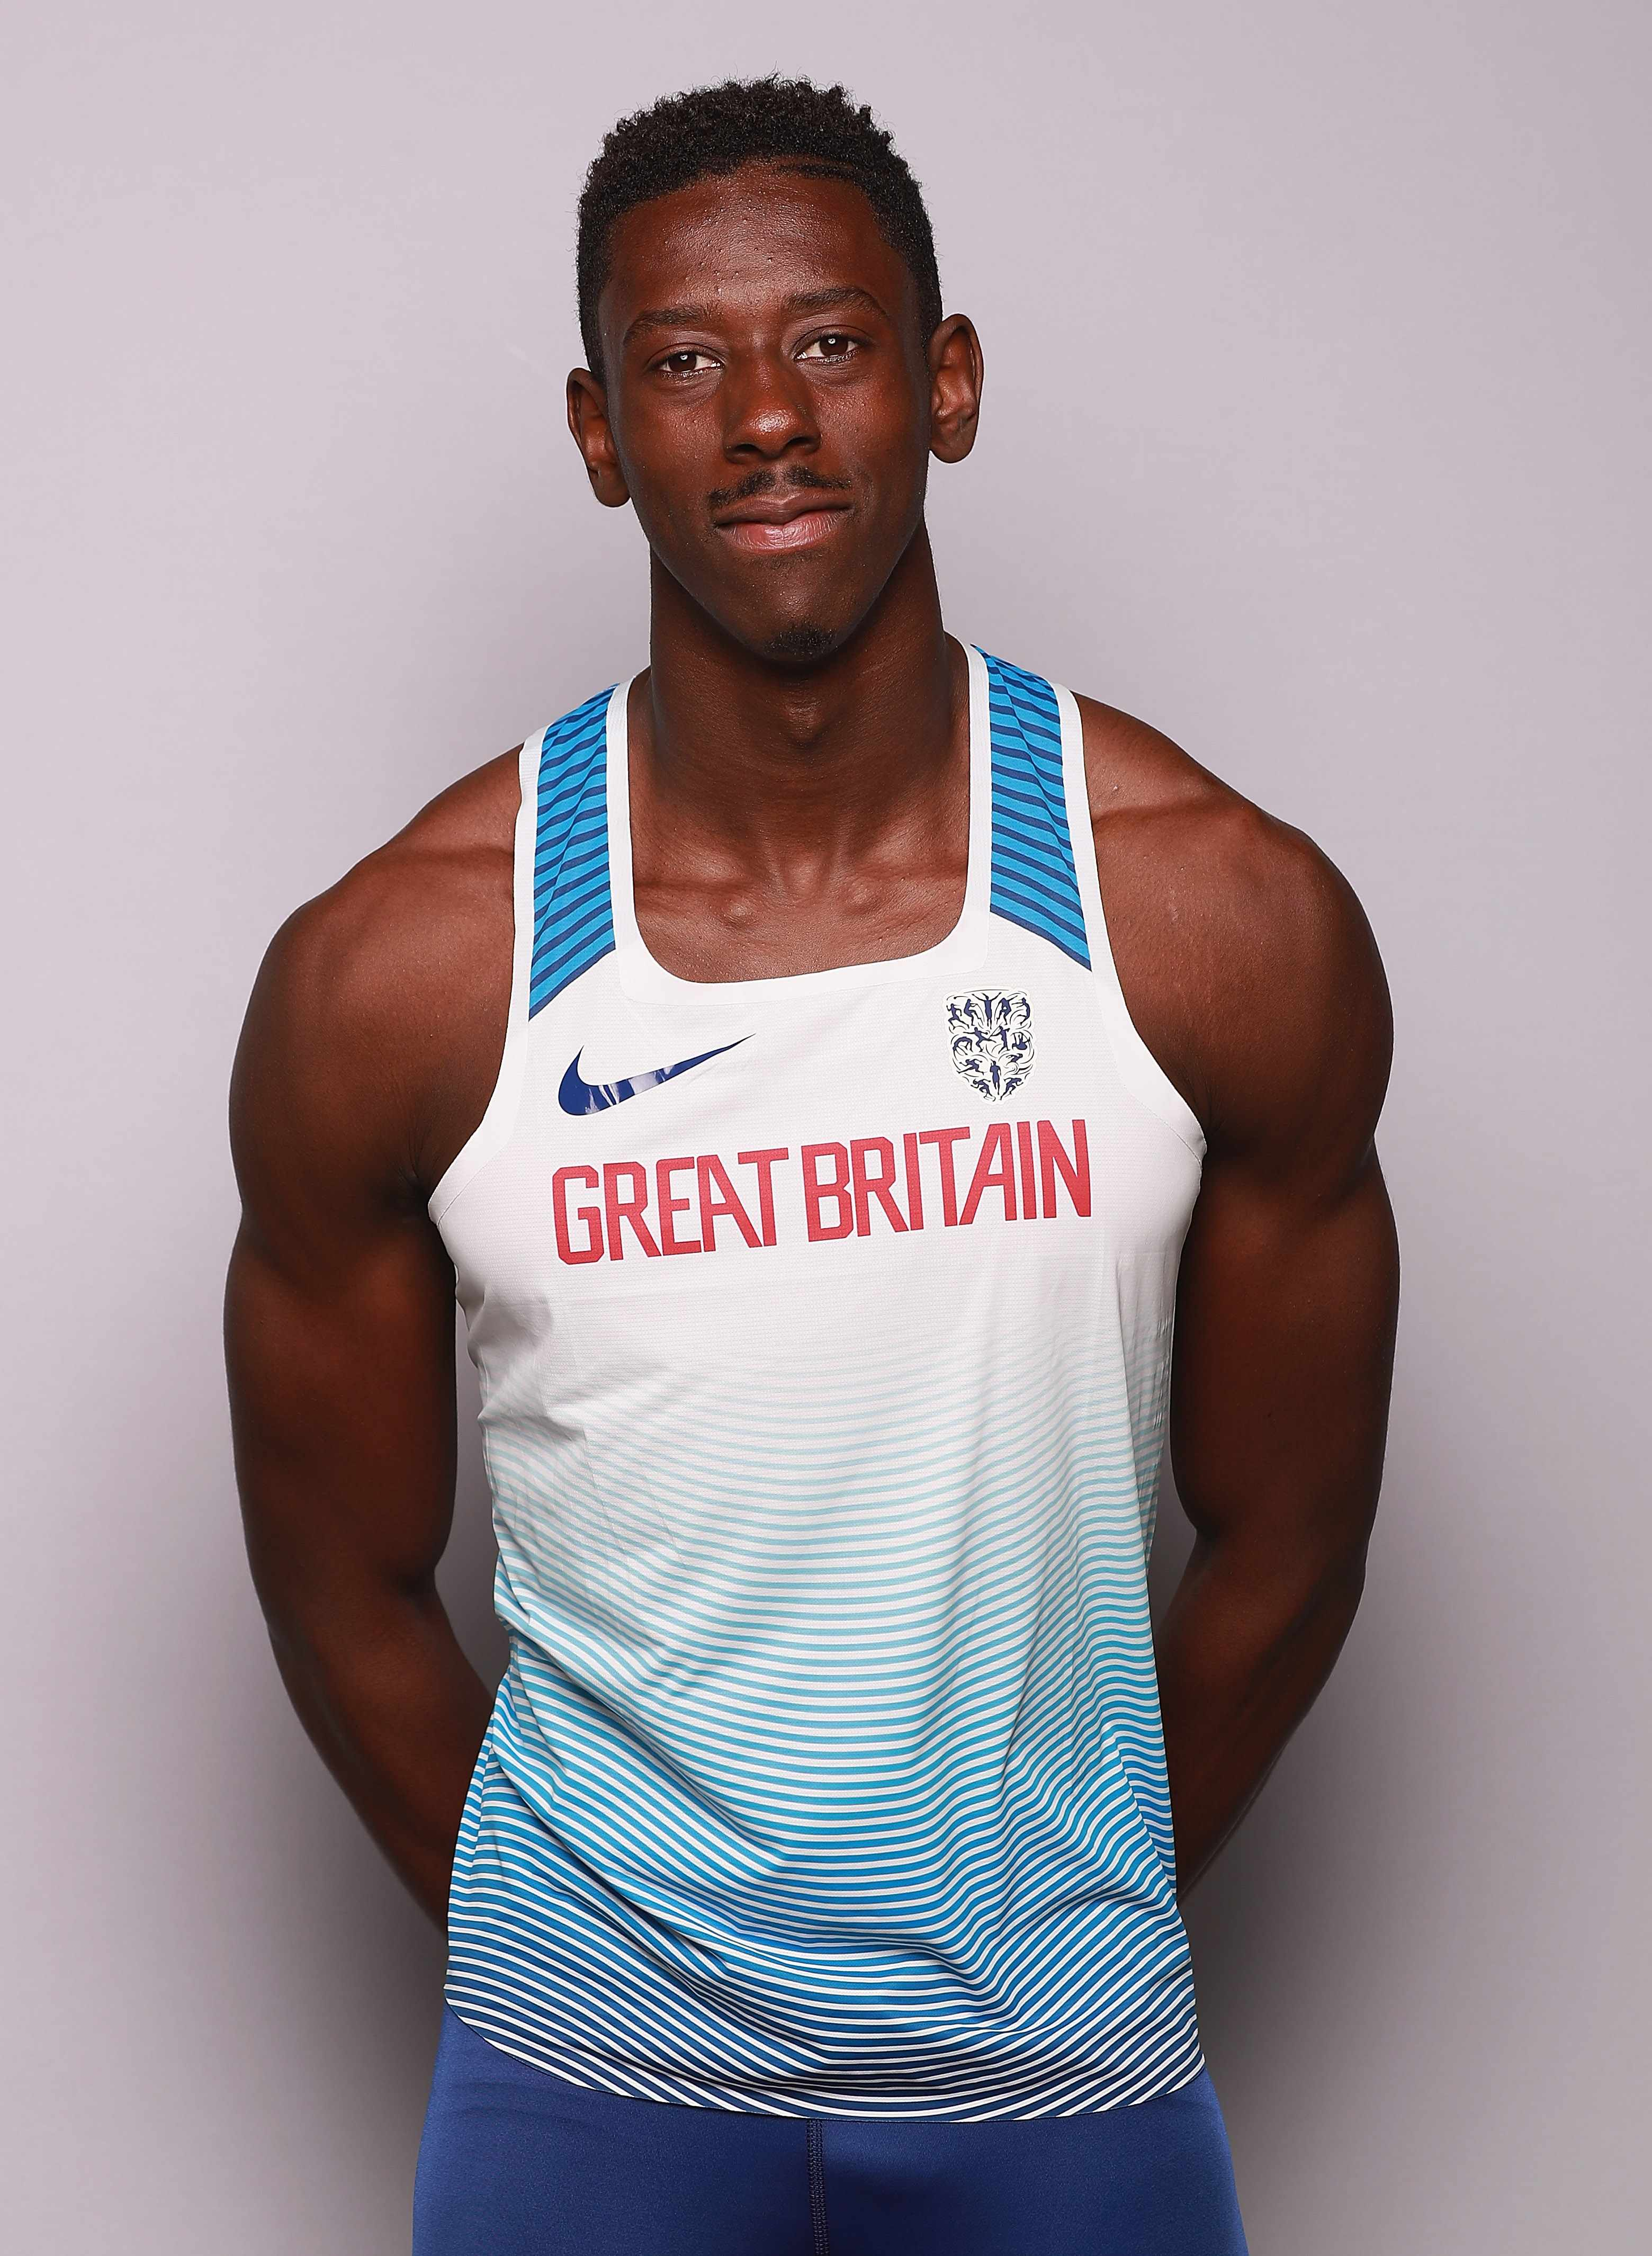 UNSPECIFIED - JULY 26:  Reece Prescod of the British Athletics team poses for a portrait / trains during the British Athletics Team World Championships Preparation Camp on July 26, 2017. The IAAF World Championships in Athletics start on Friday 4th August 2017 in London  (Photo by Matt Lewis - British Athletics/British Athletics via Getty Images) TL